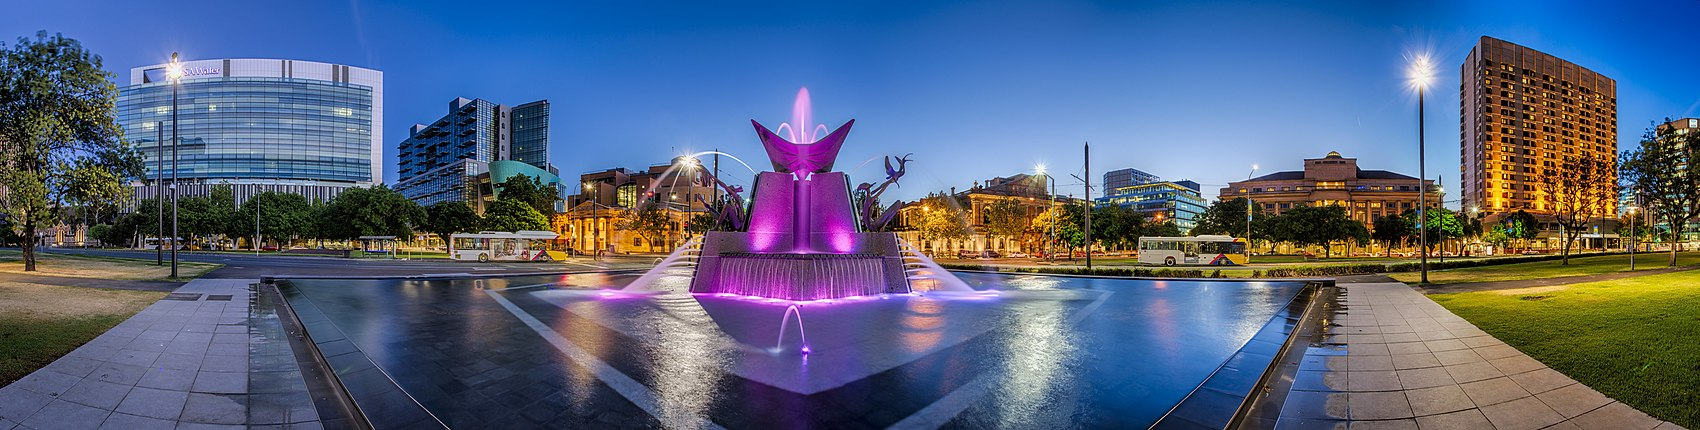 Victoria Square, central Adelaide